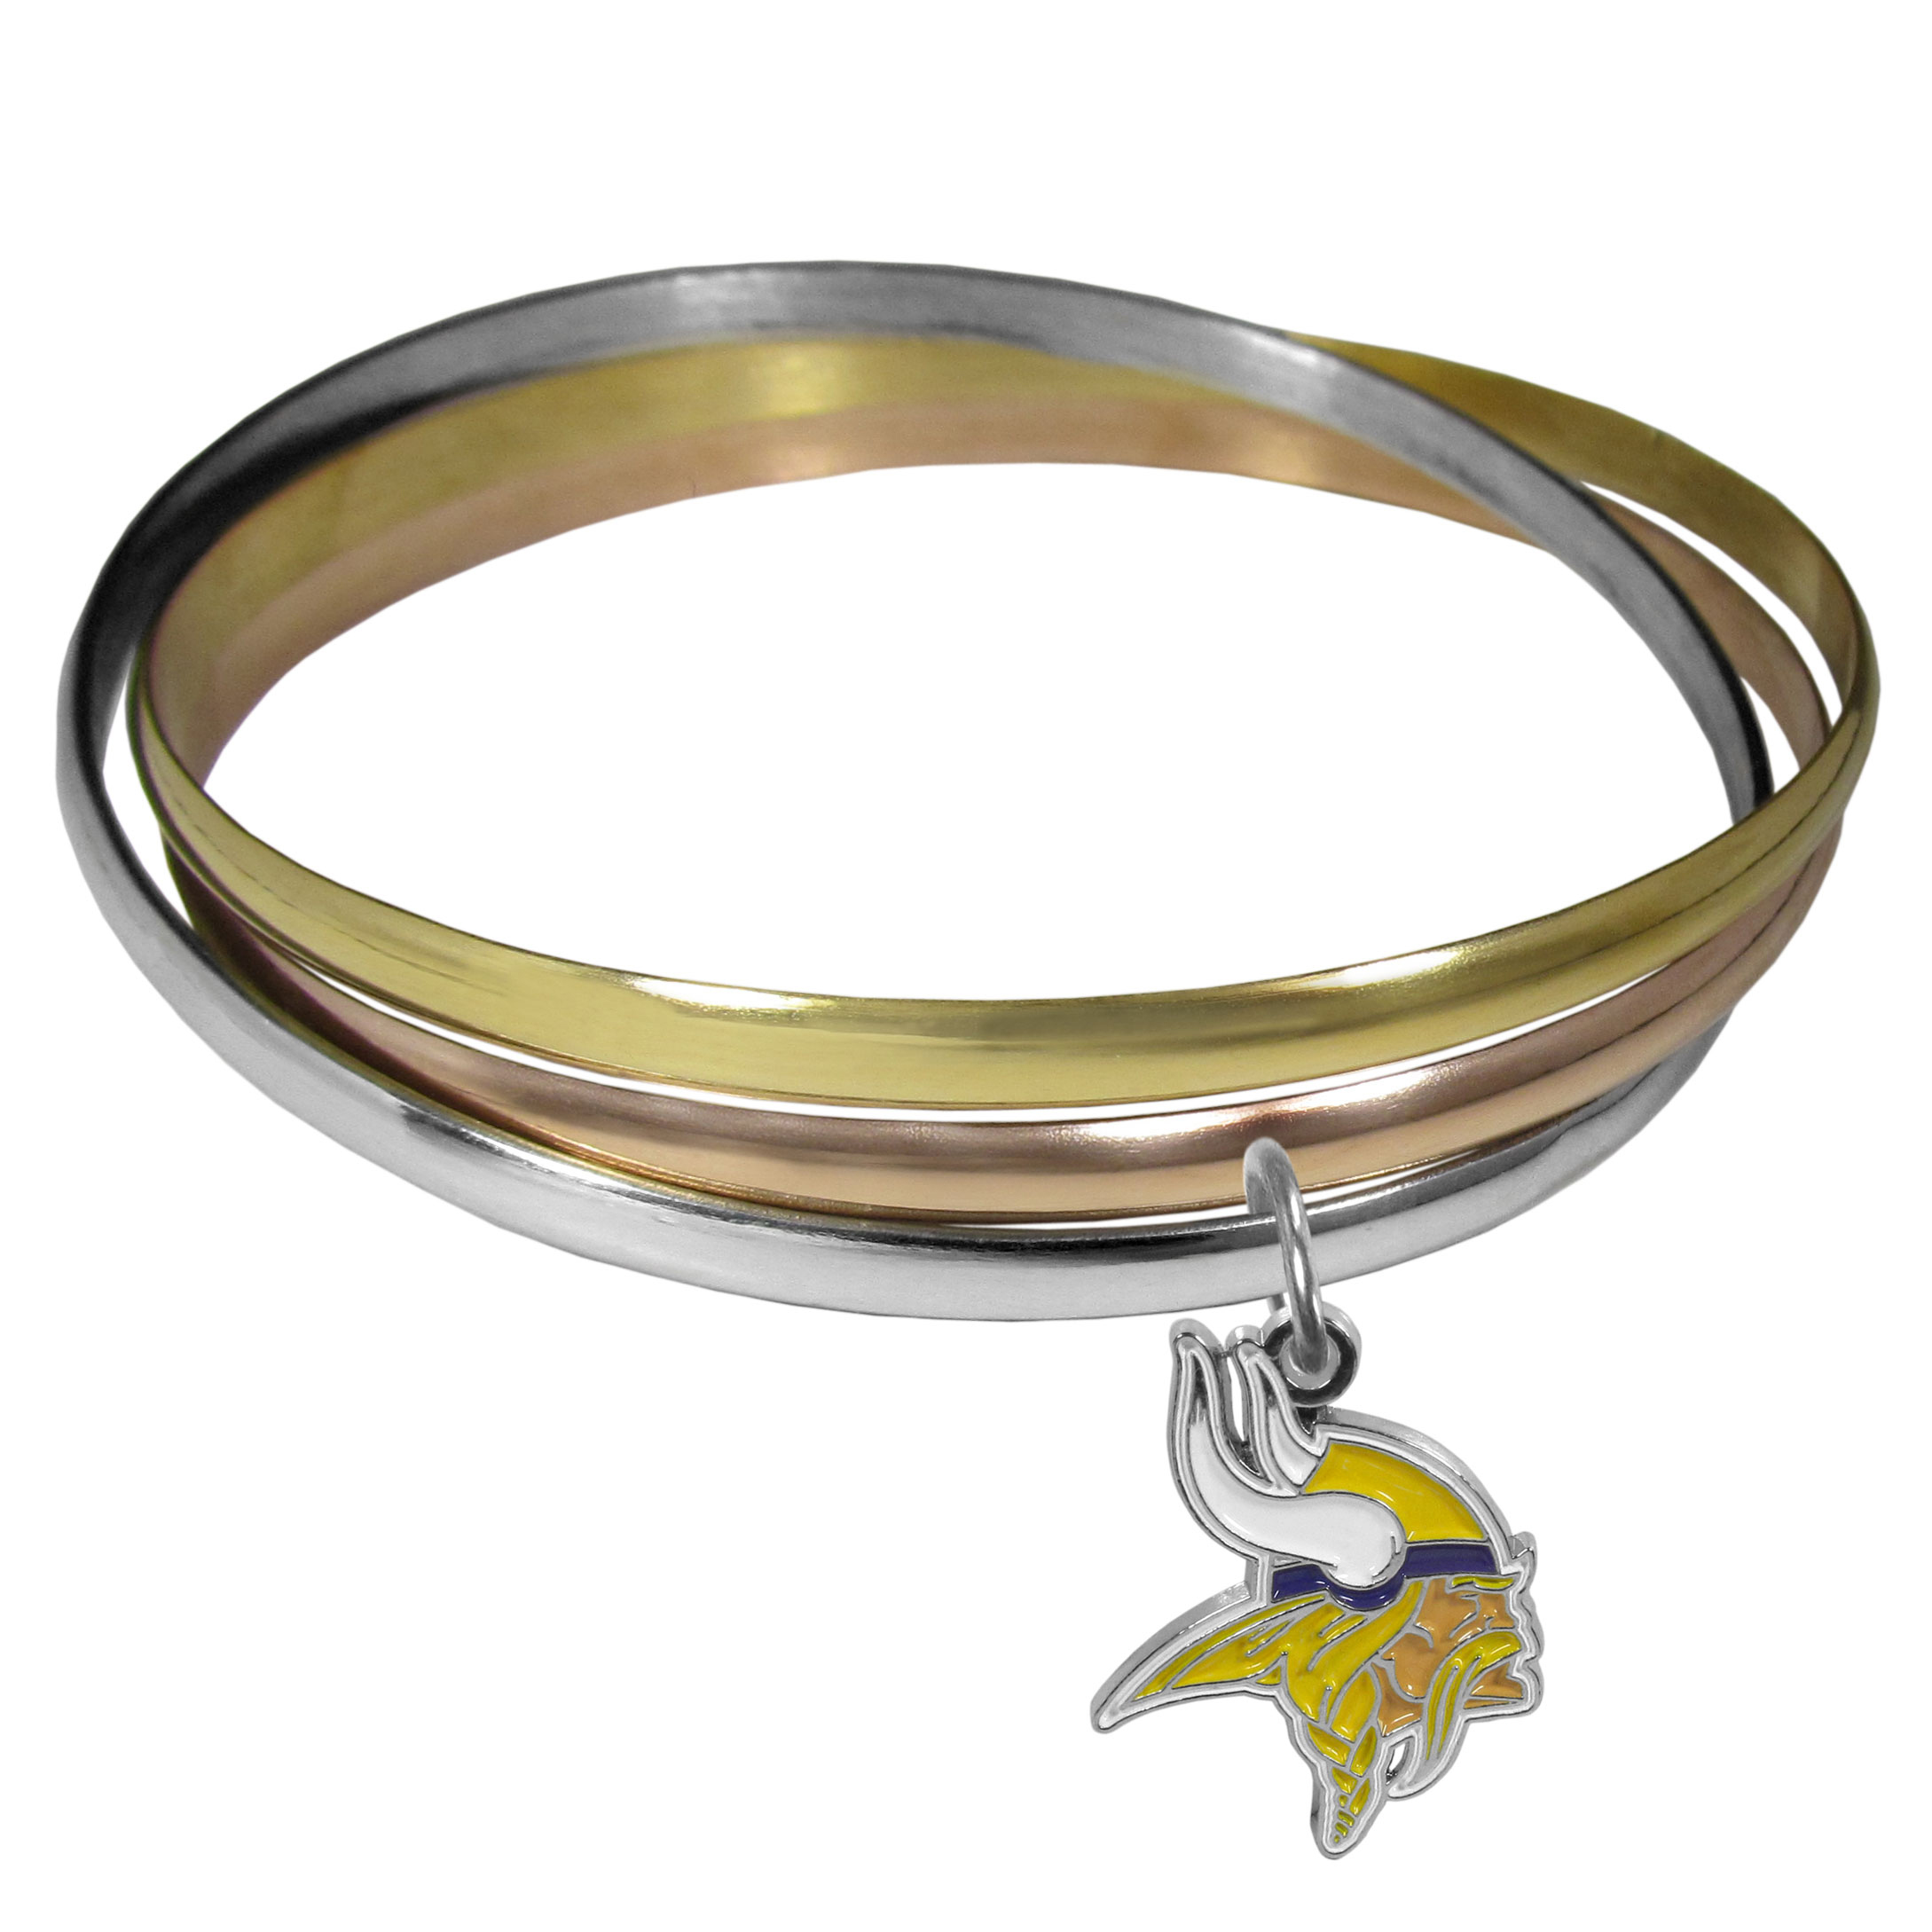 Minnesota Vikings Tri-color Bangle Bracelet - These beautiful bangles come in a interlocking style and feature a fully cast Minnesota Vikings charm with enameled team colors. The bracelet has a silver toned bangle, gold tone bangle and brass toned bangle.